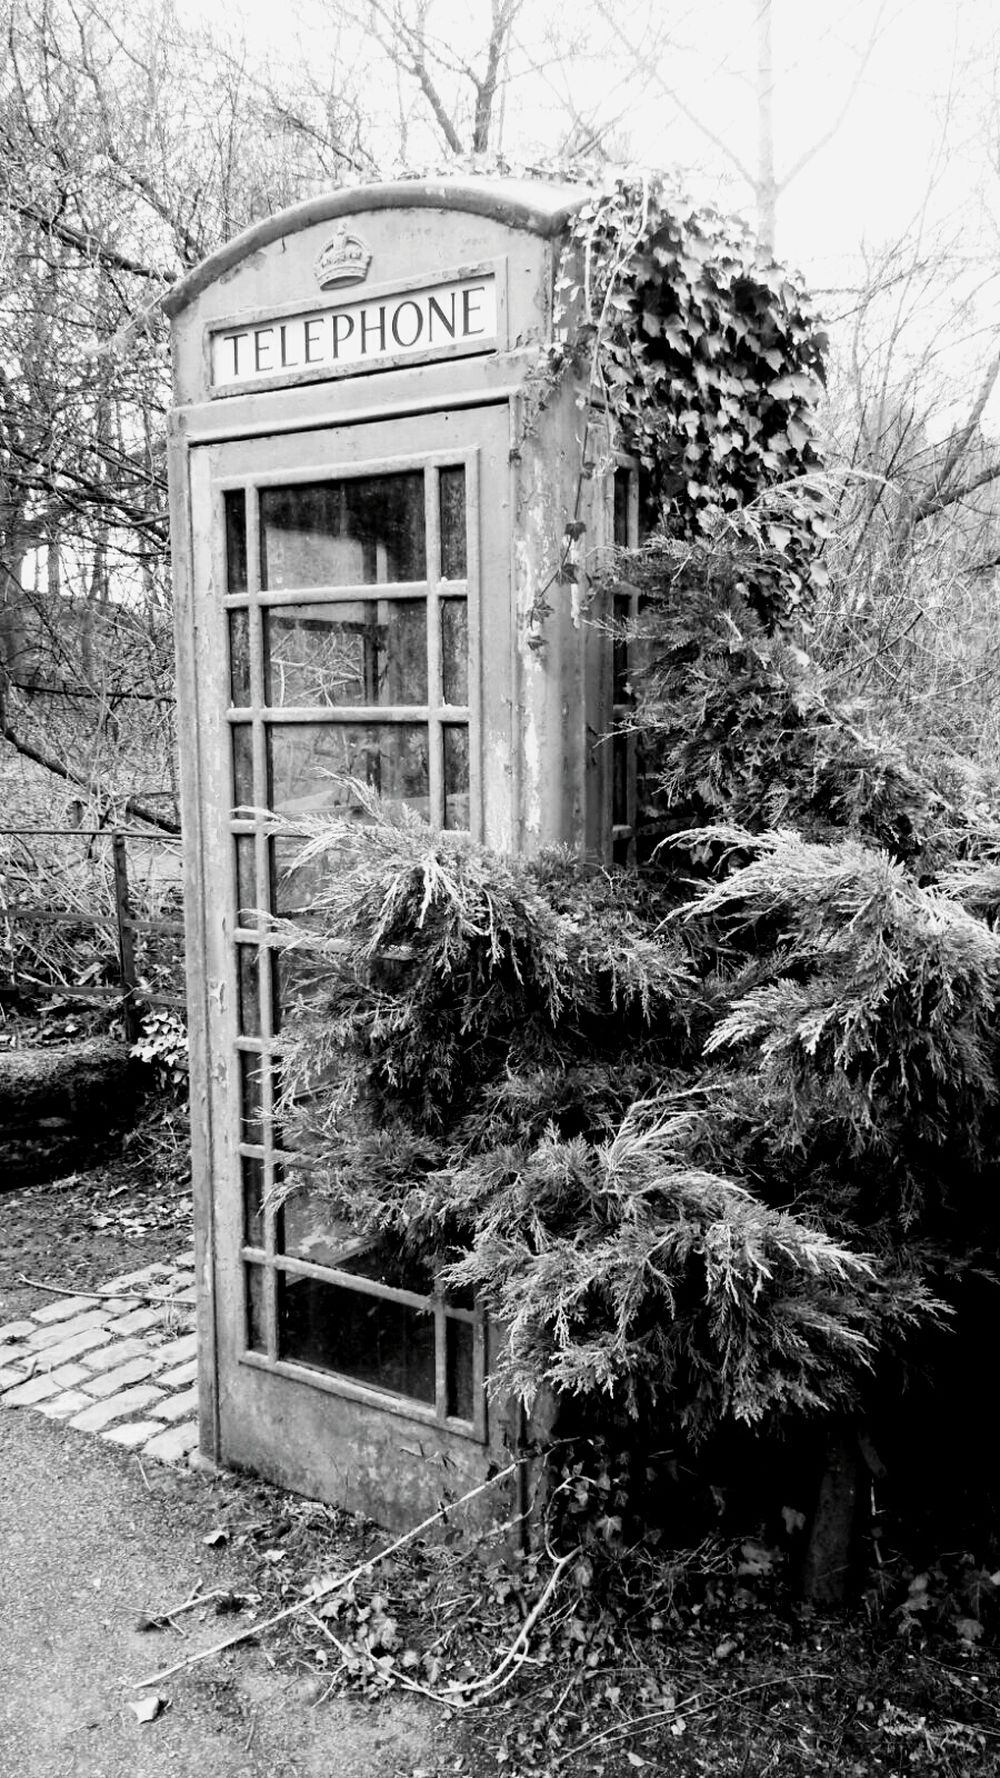 Outdoors Growth Day Plant Communication Text Grass Telephone Booth No People Nature Countryside Nature British Scenes Retro Telephone Countryside Red Telephone Box Growth Wildlife And Nature Telephone Box